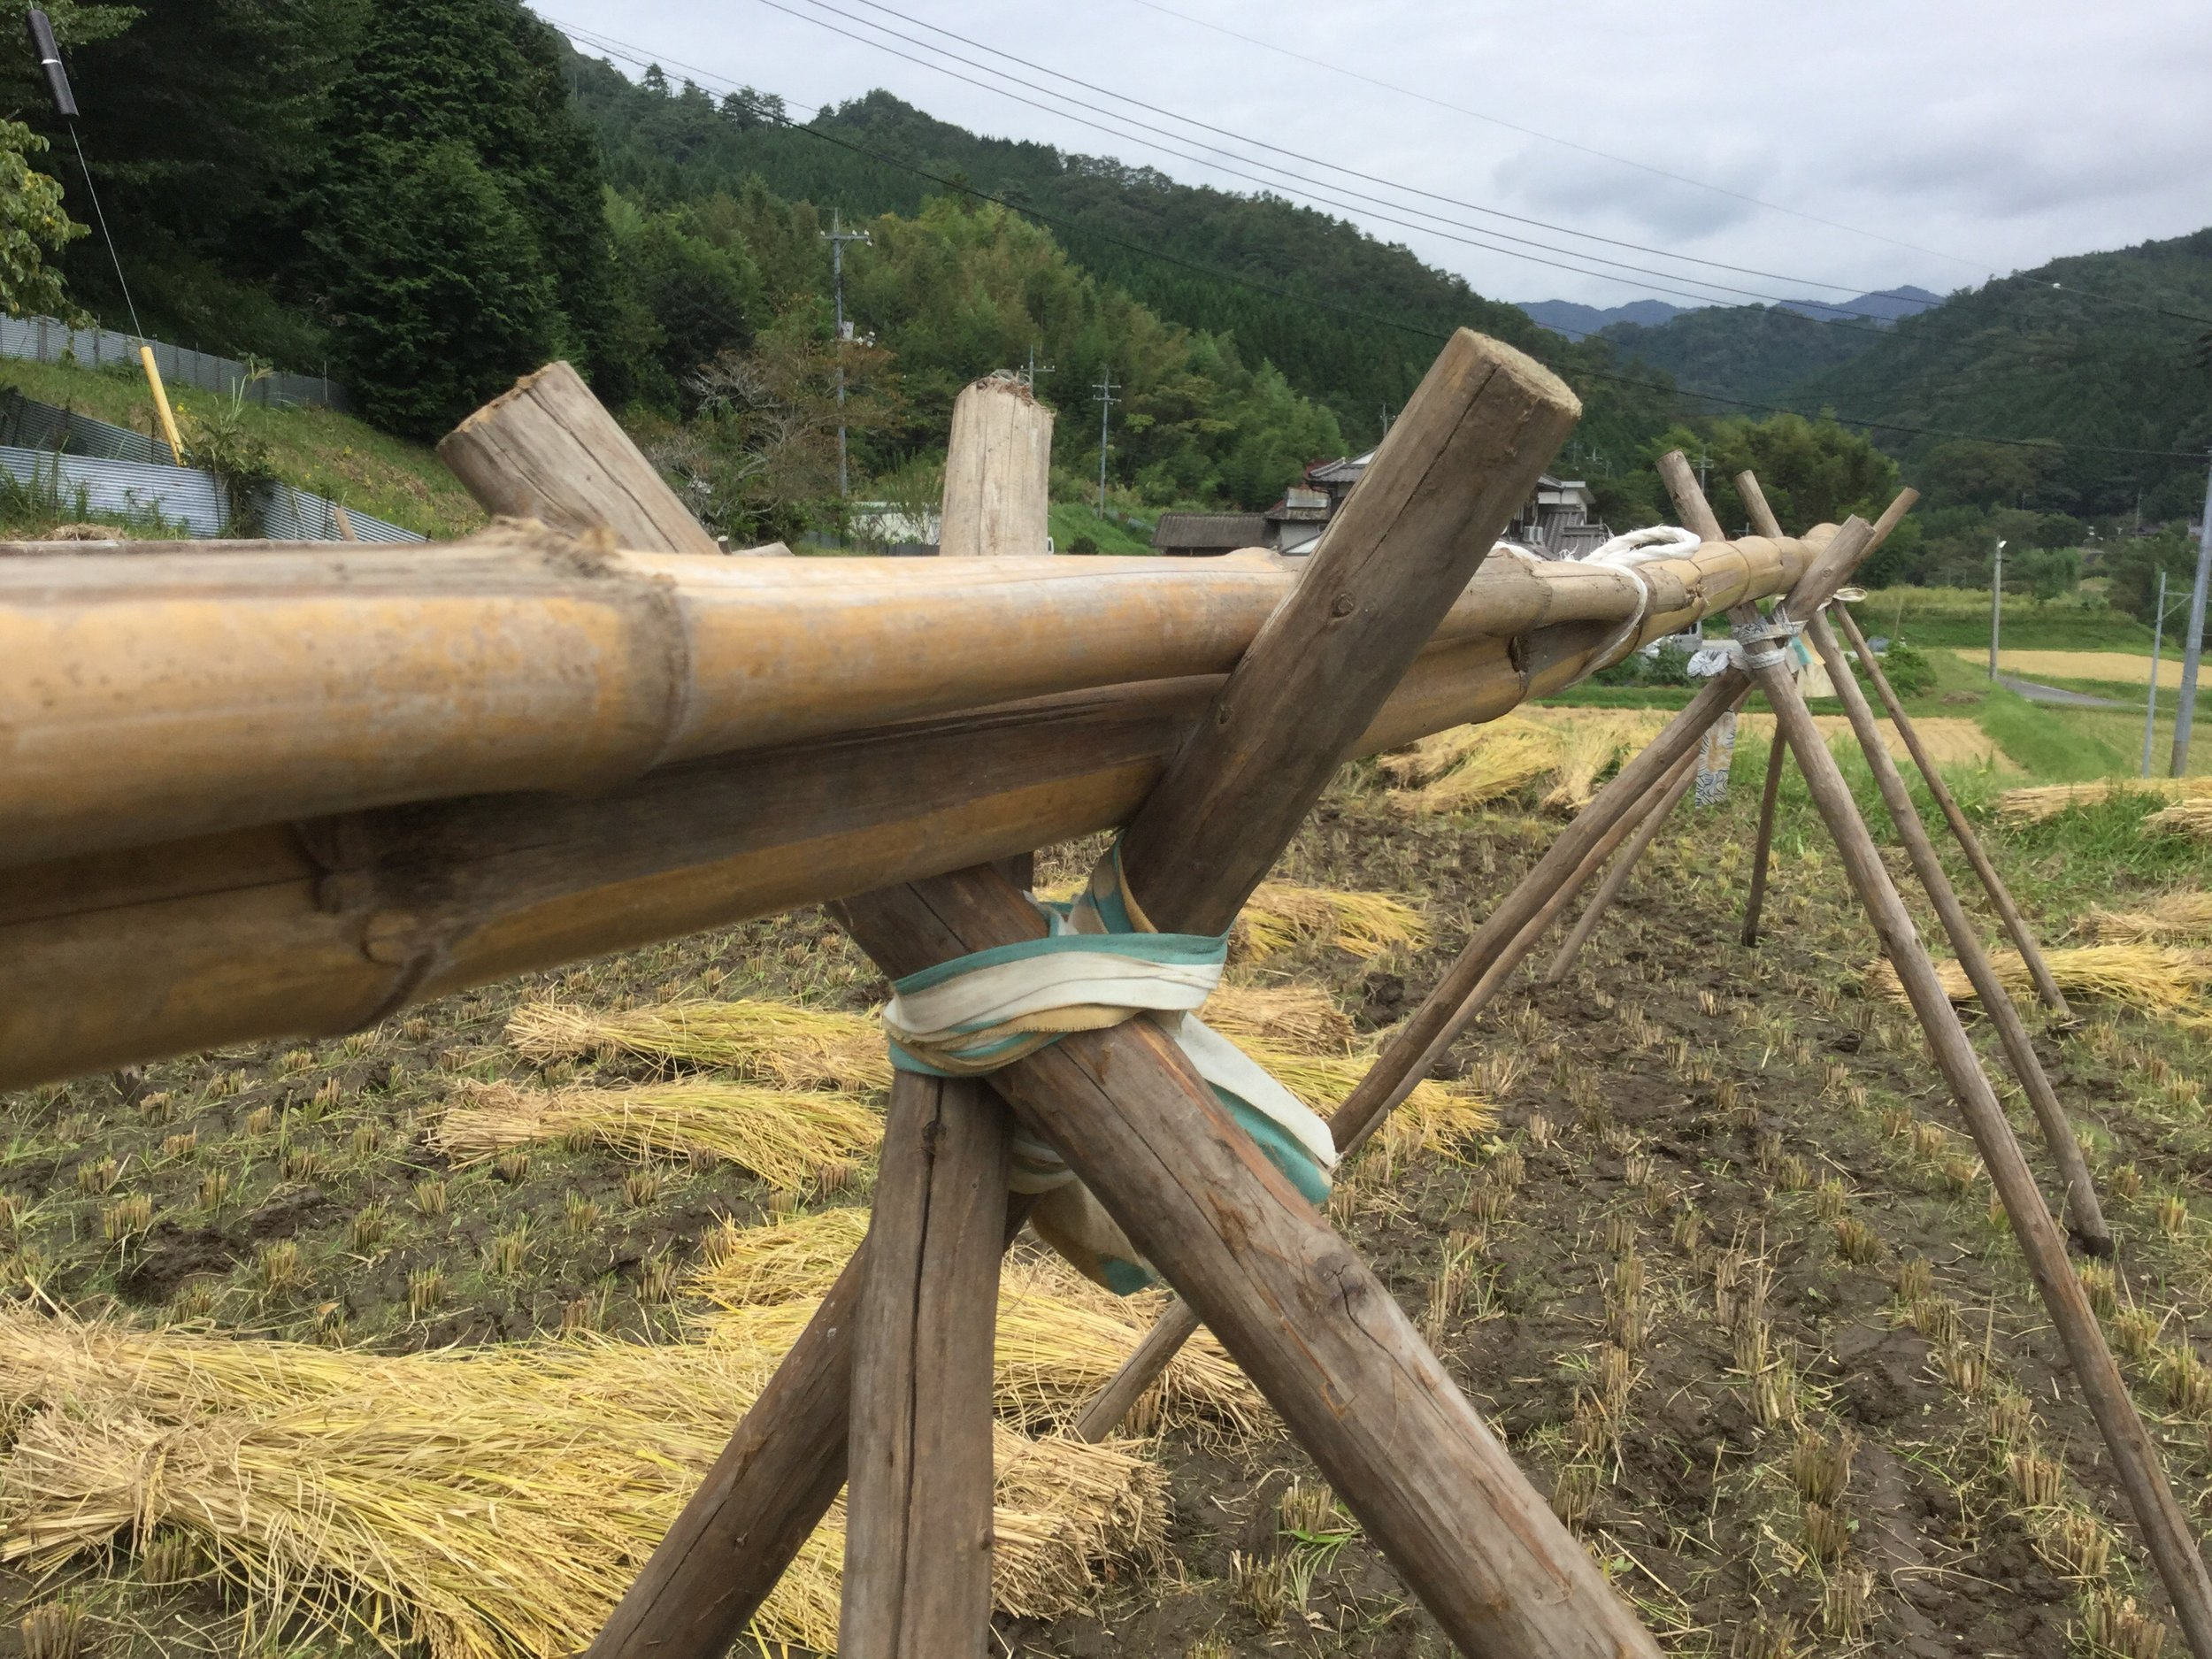 Stable bamboo tripods.